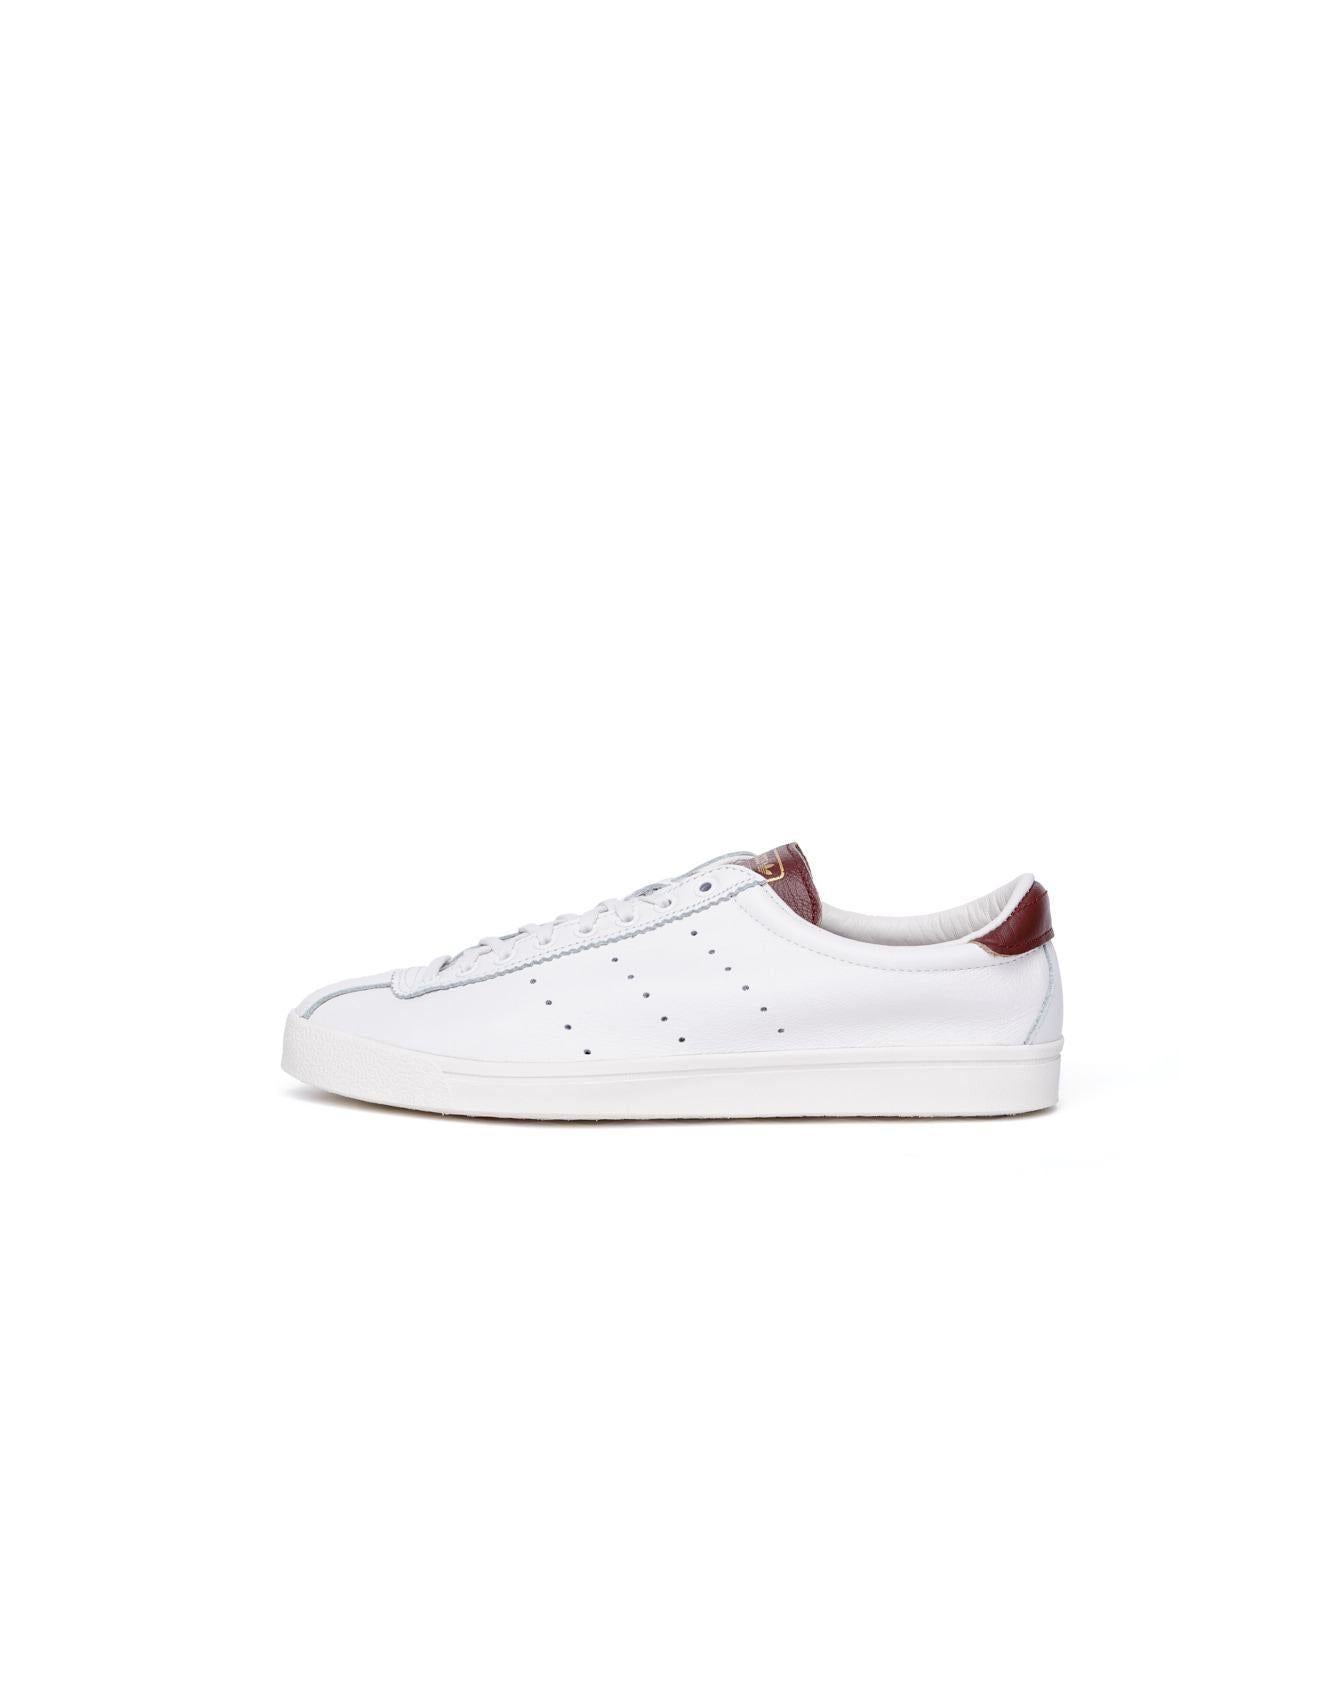 size 40 fa518 4681b Adidas white Lacombe leather sneakers for men available at Bellerose